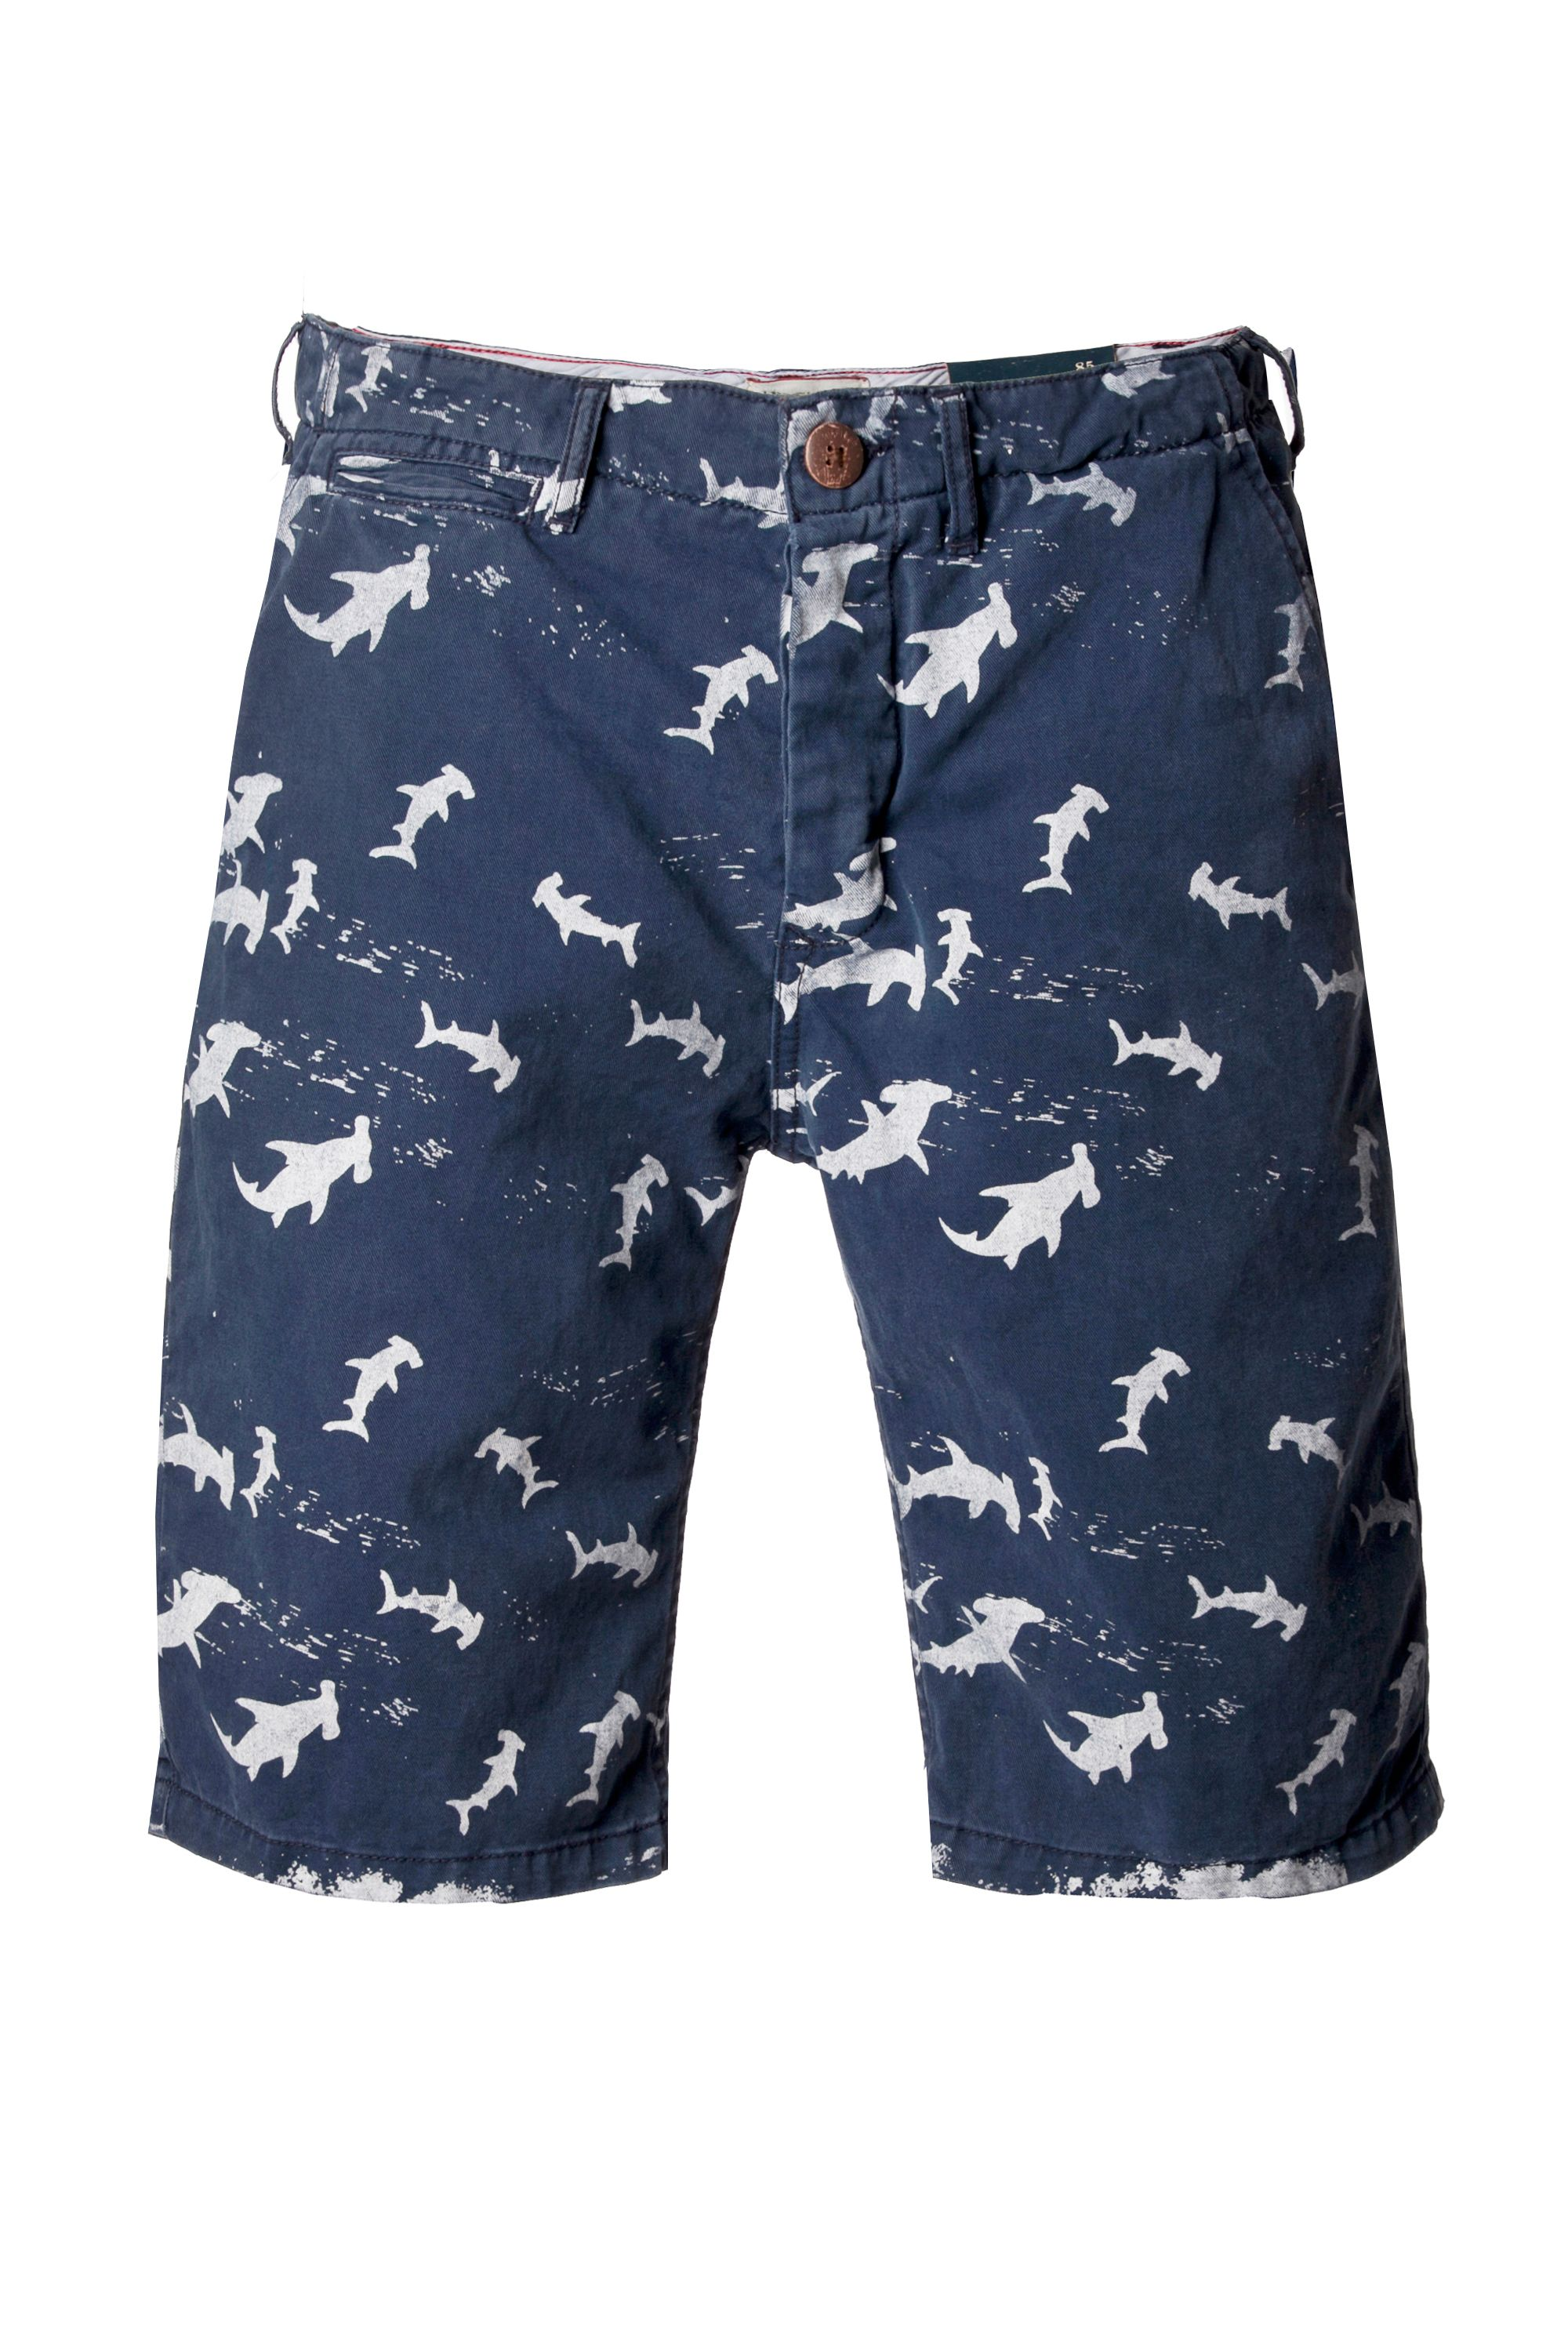 Rock shark short